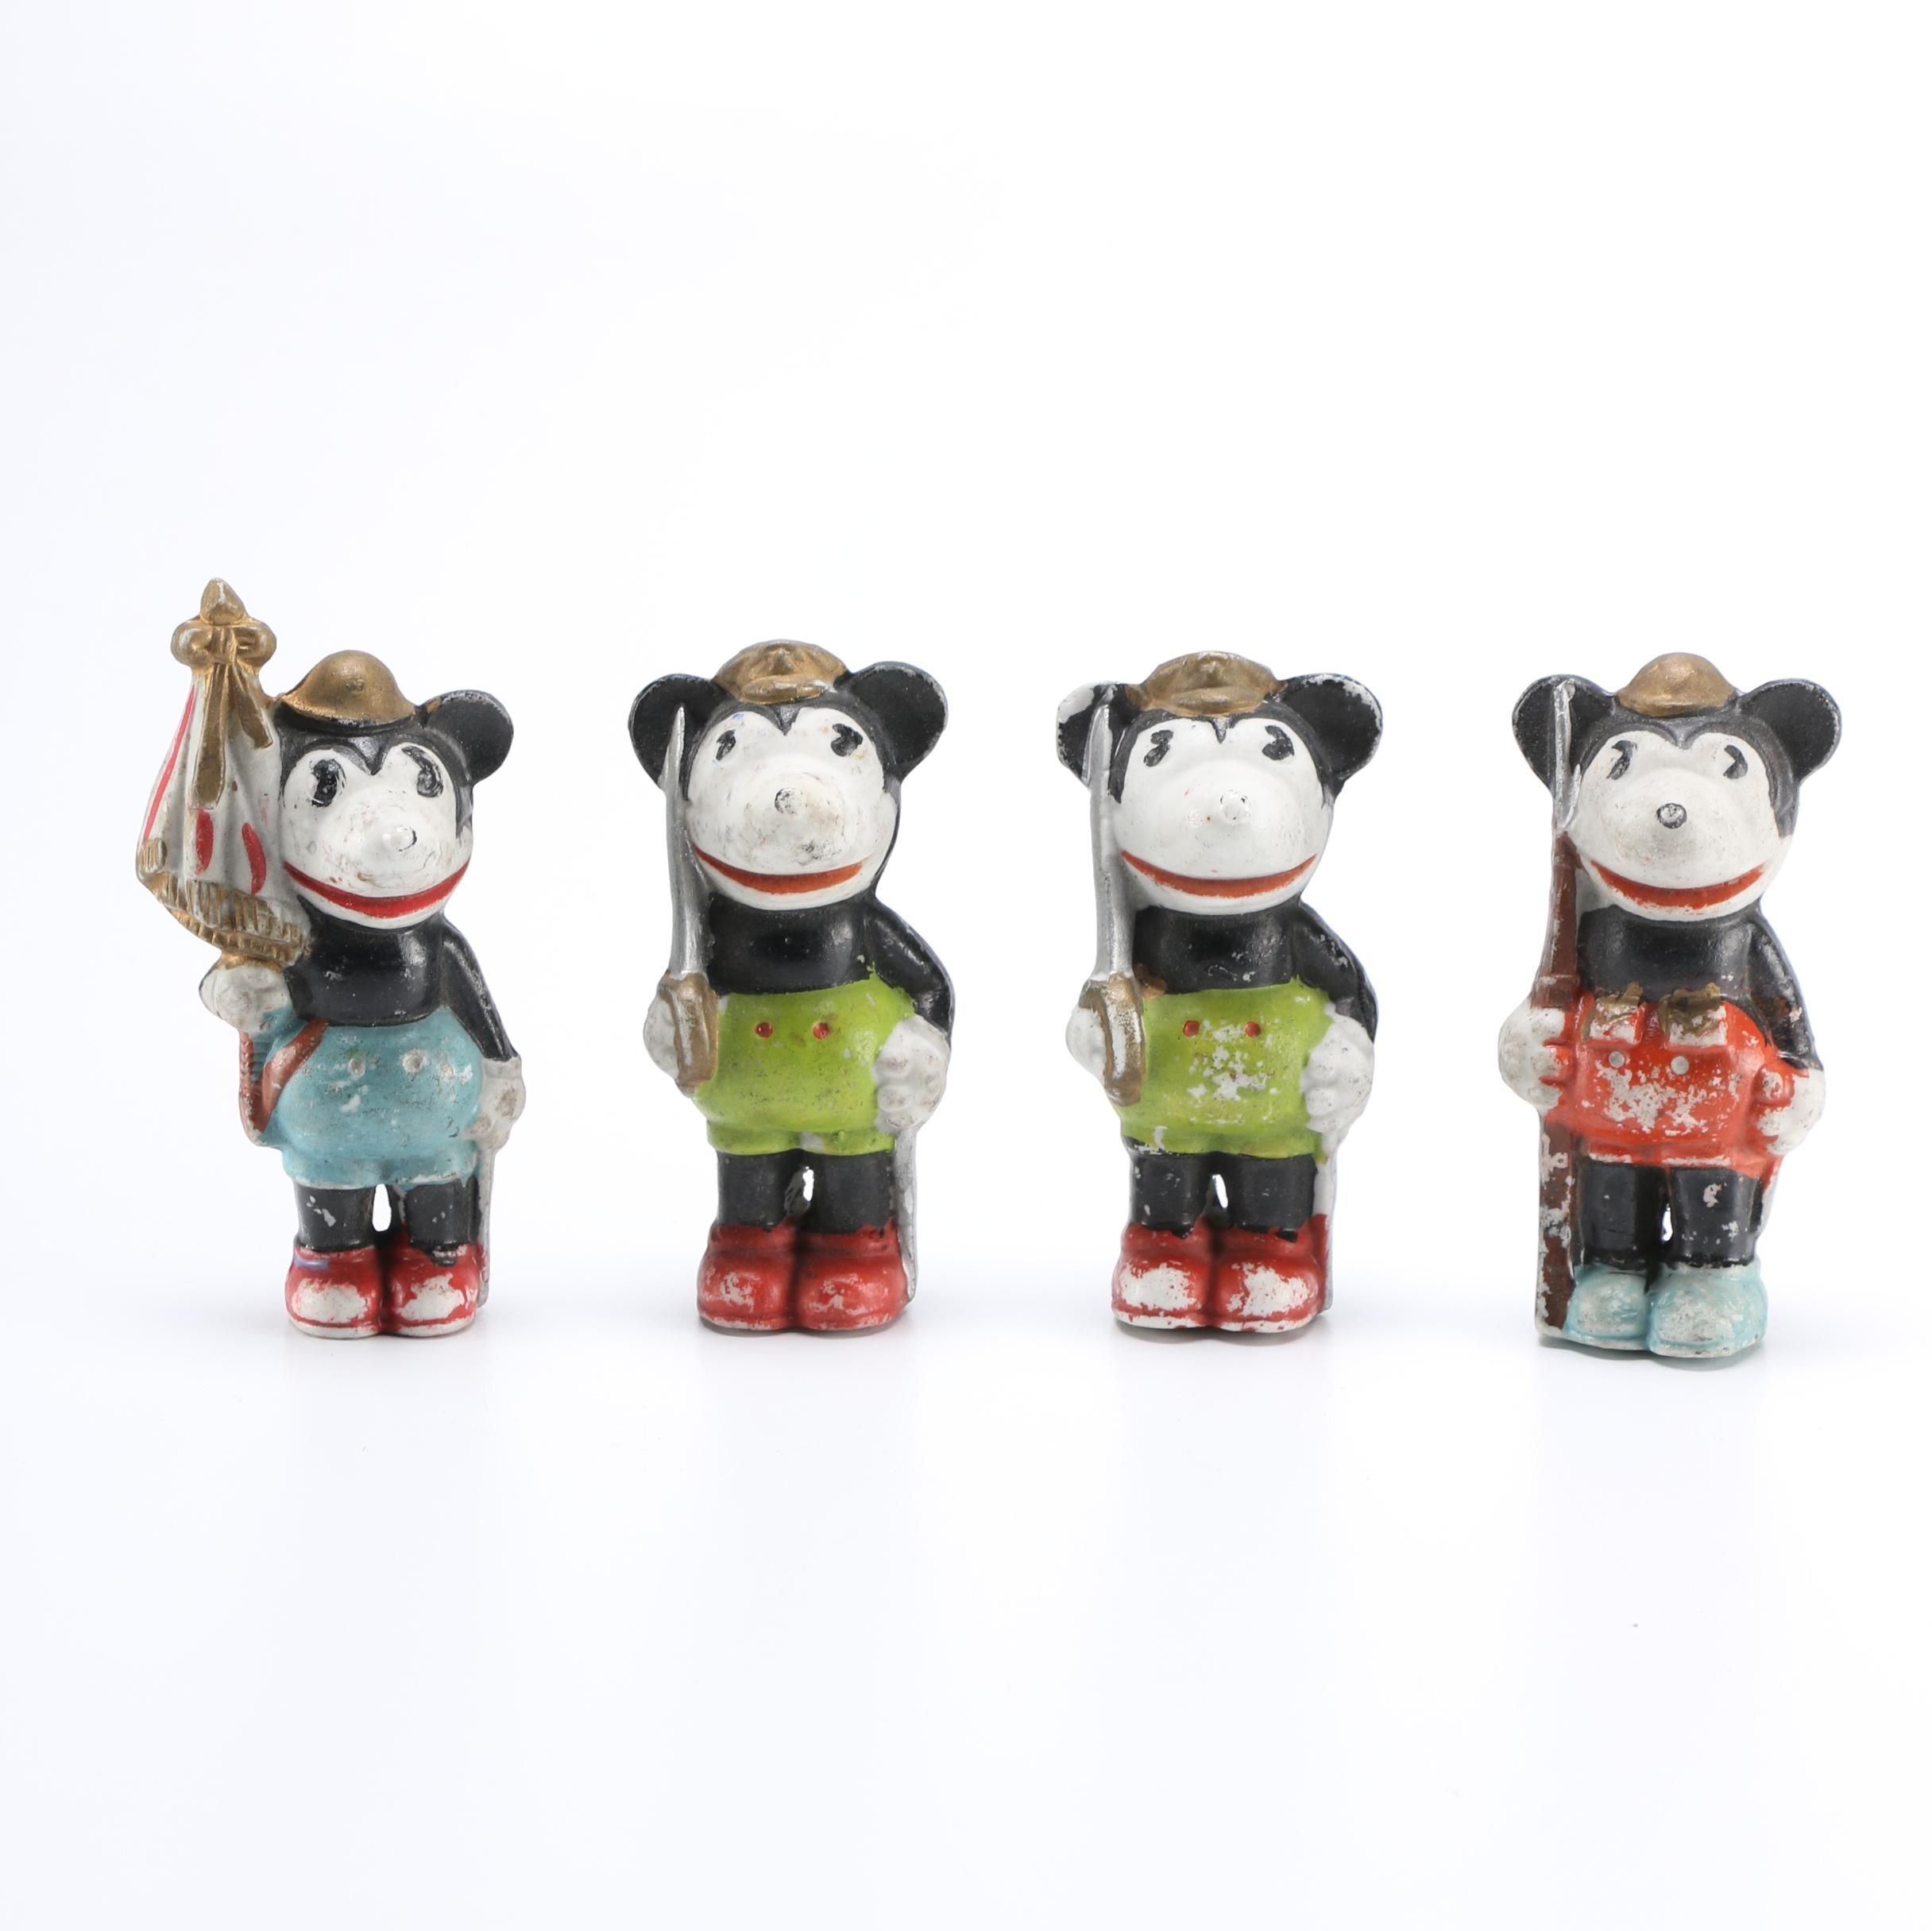 1930s Disney Mickey Mouse Soldier Bisque Figurines